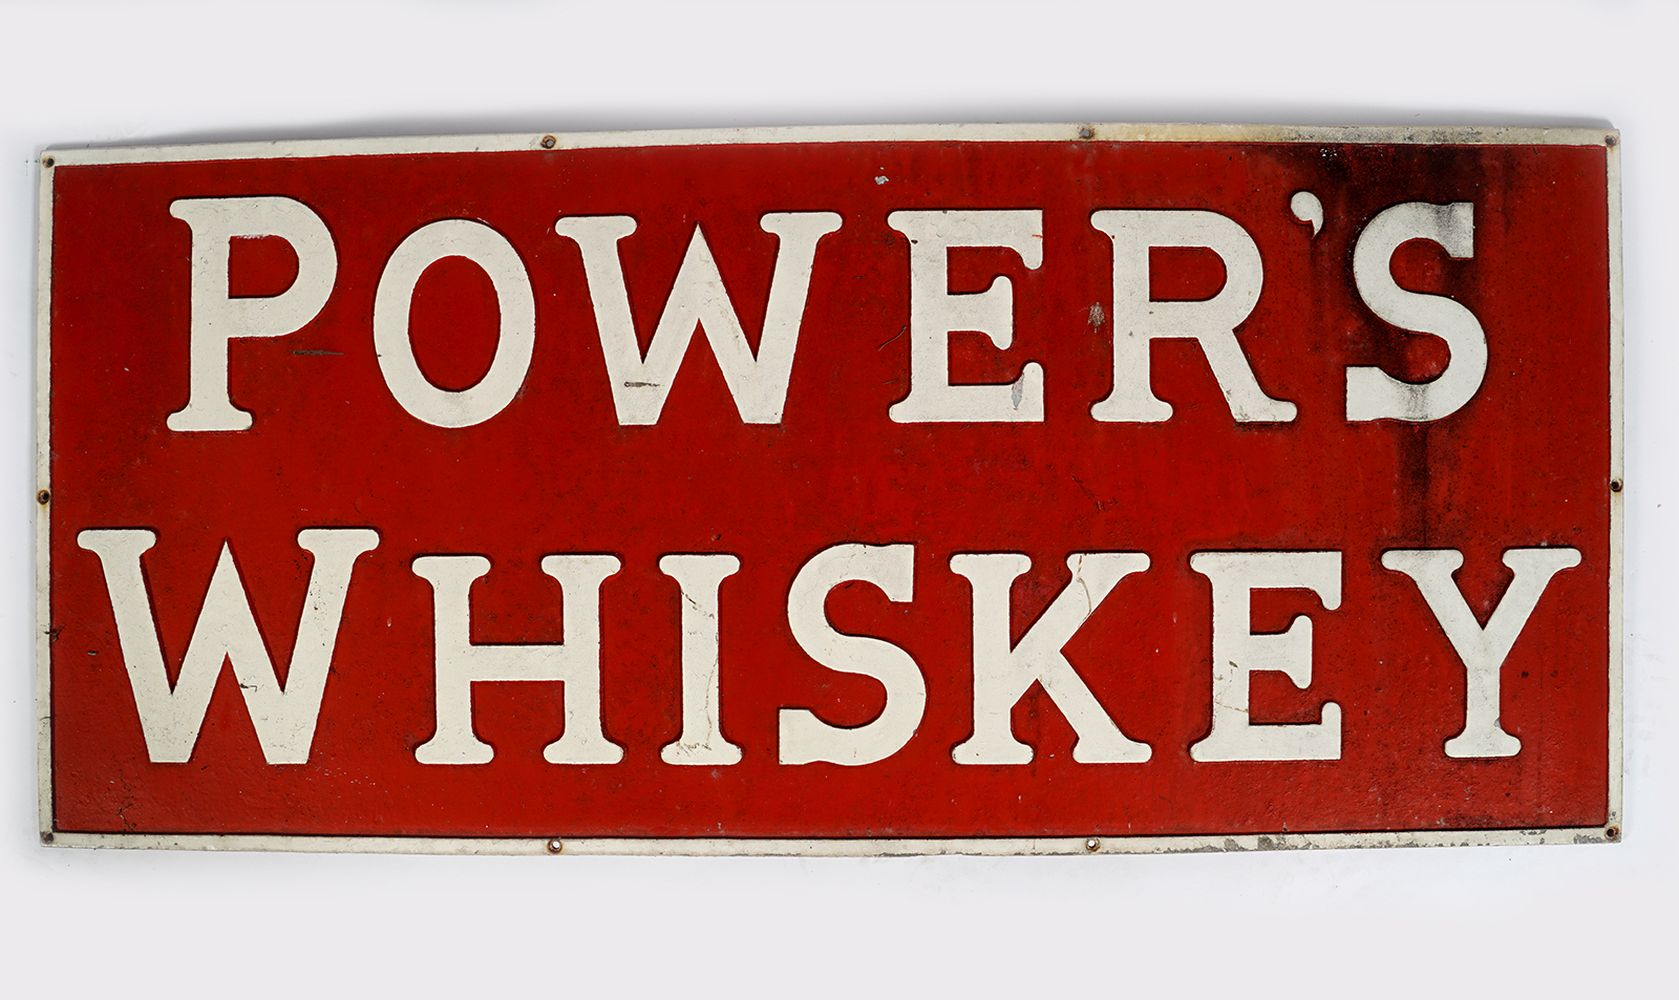 POWER'S WHISKEY ADVERTISING SIGN - Image 2 of 3